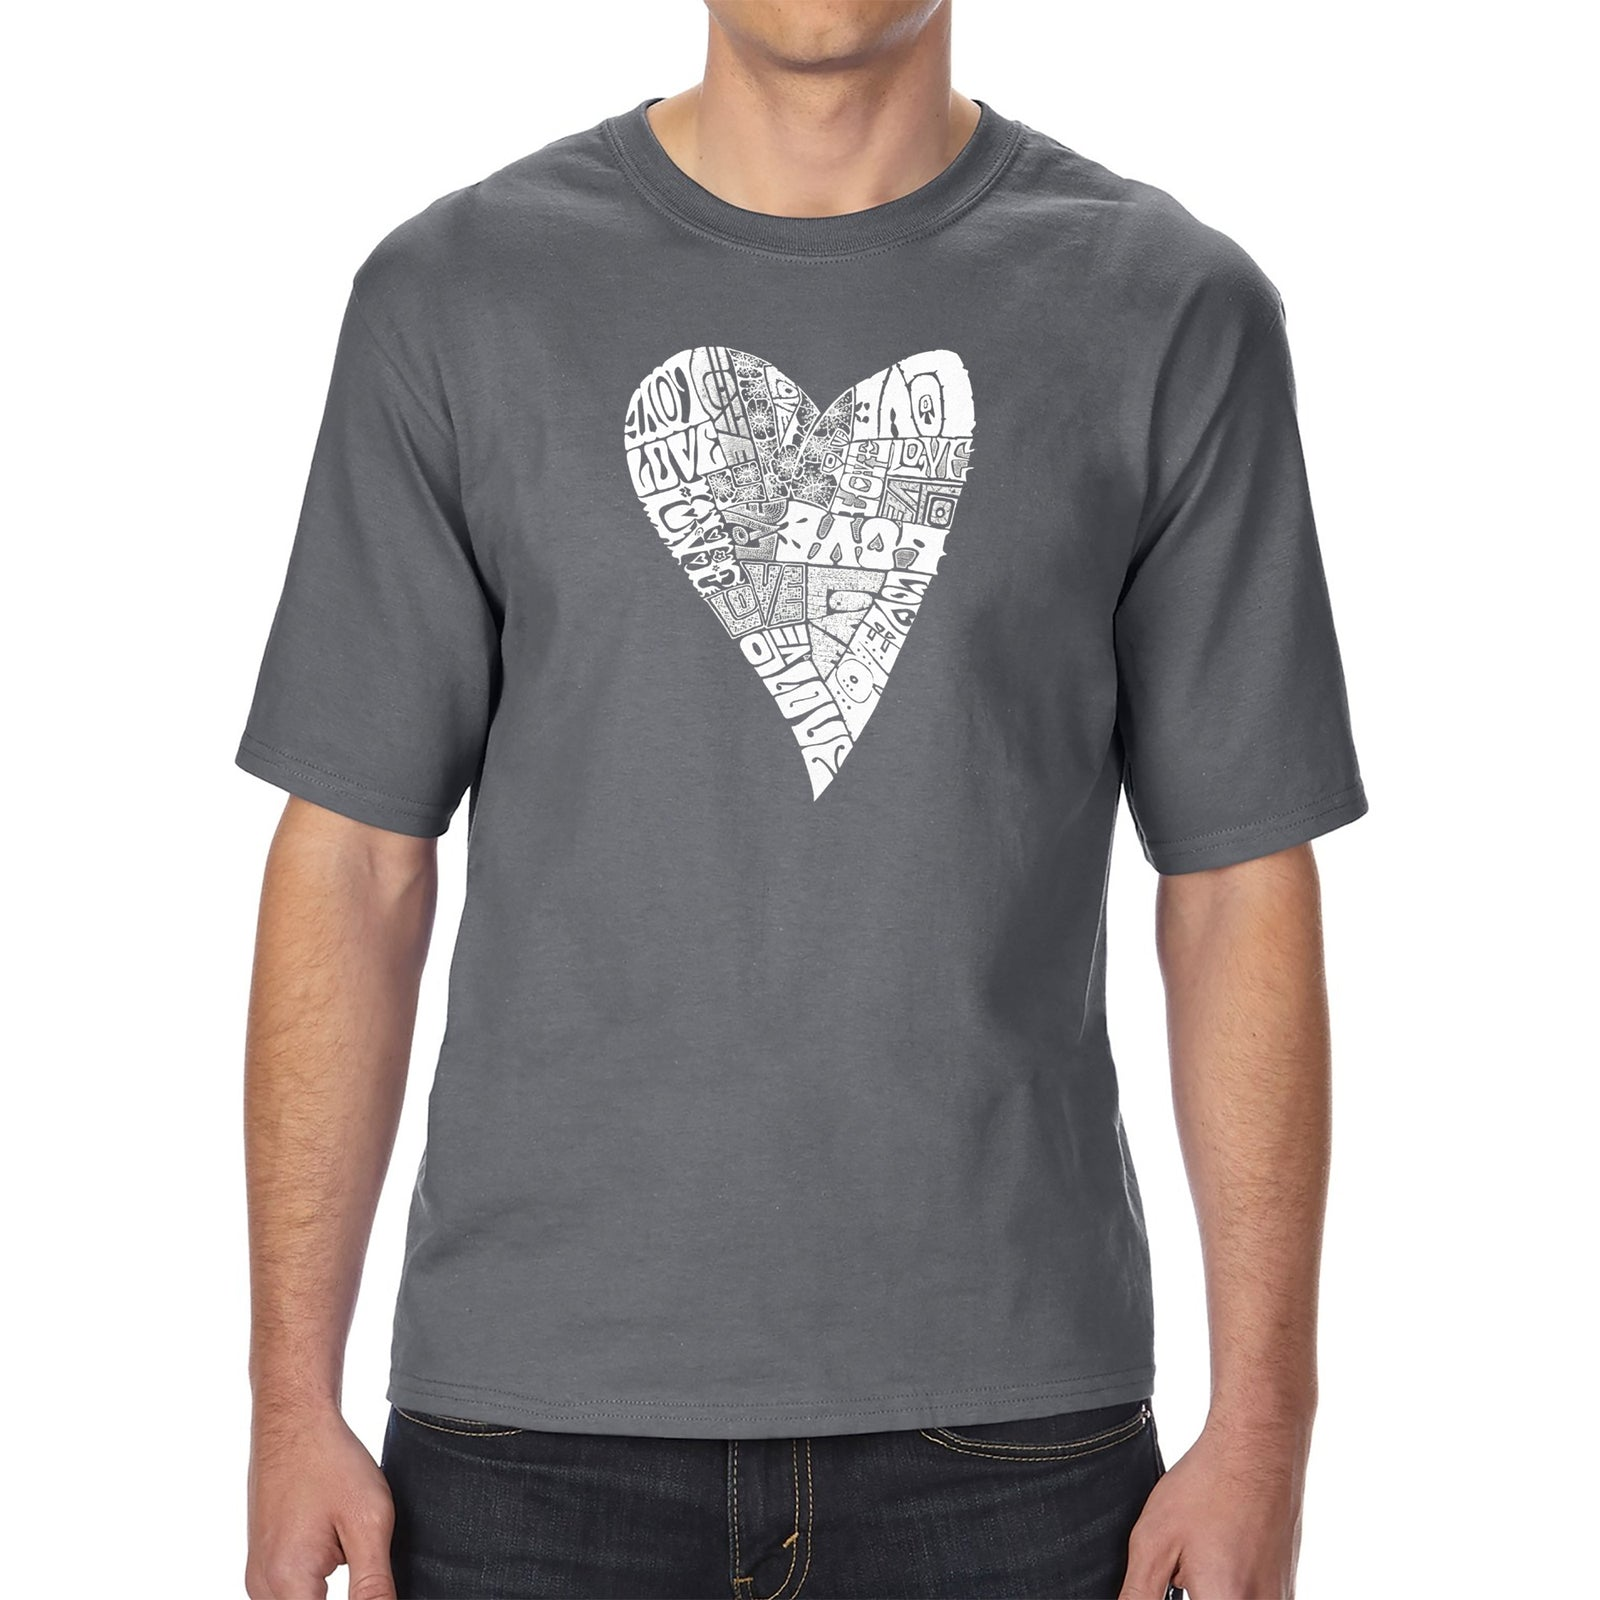 Men's Tall and Long Word Art T-shirt - Lots of Love